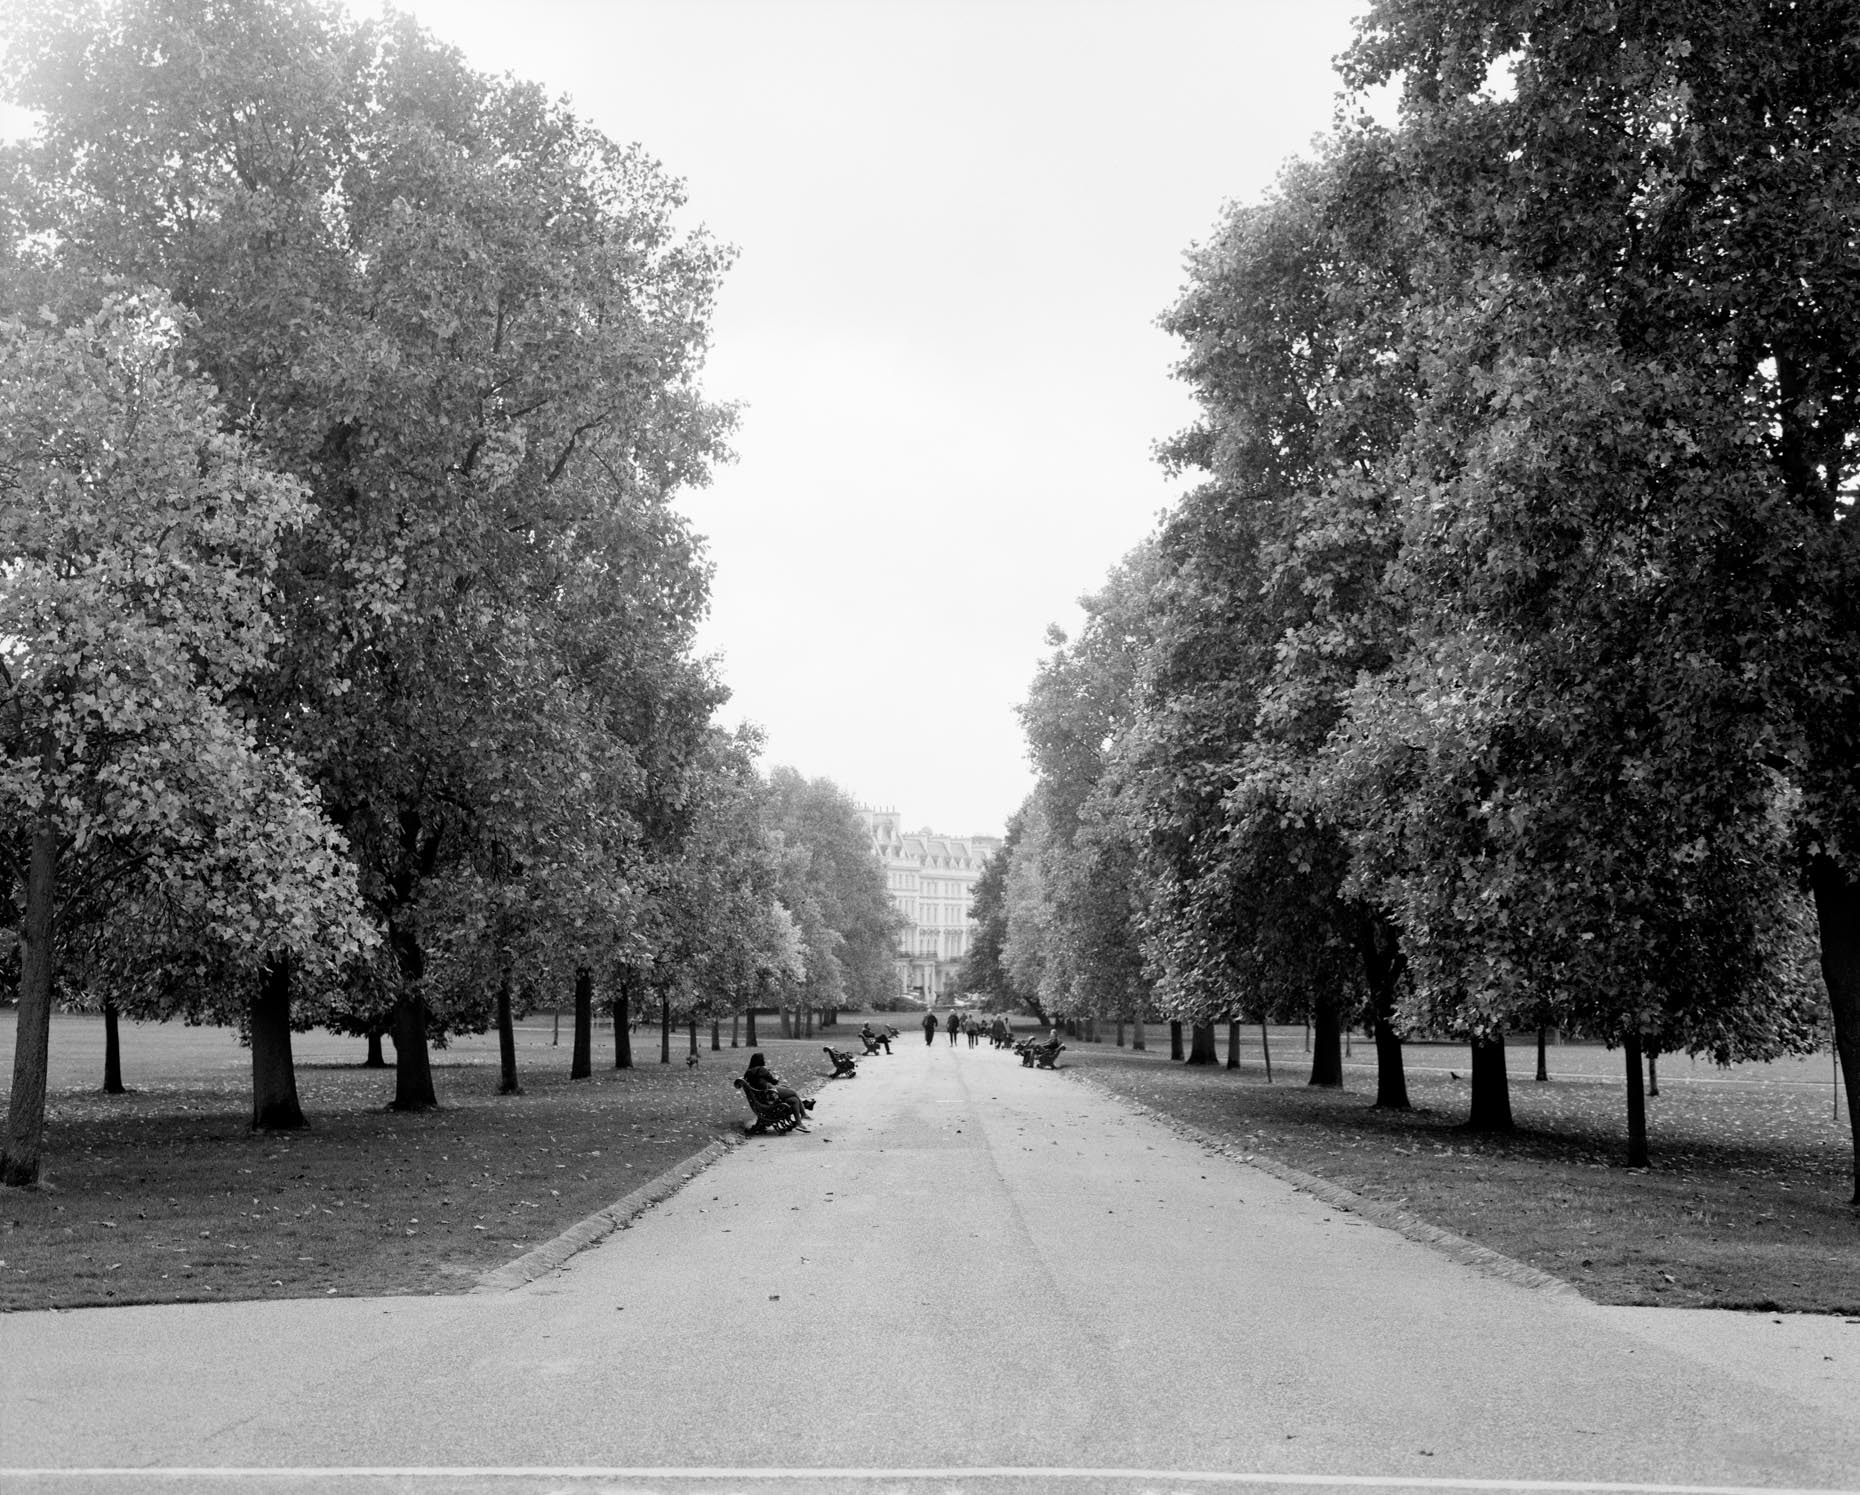 Axel Bernstorff, Collectable limited edition fine photographic art prints. Kensington Park Gardens. royal residence in the Royal Borough of Kensington and Chelsea in London, England.